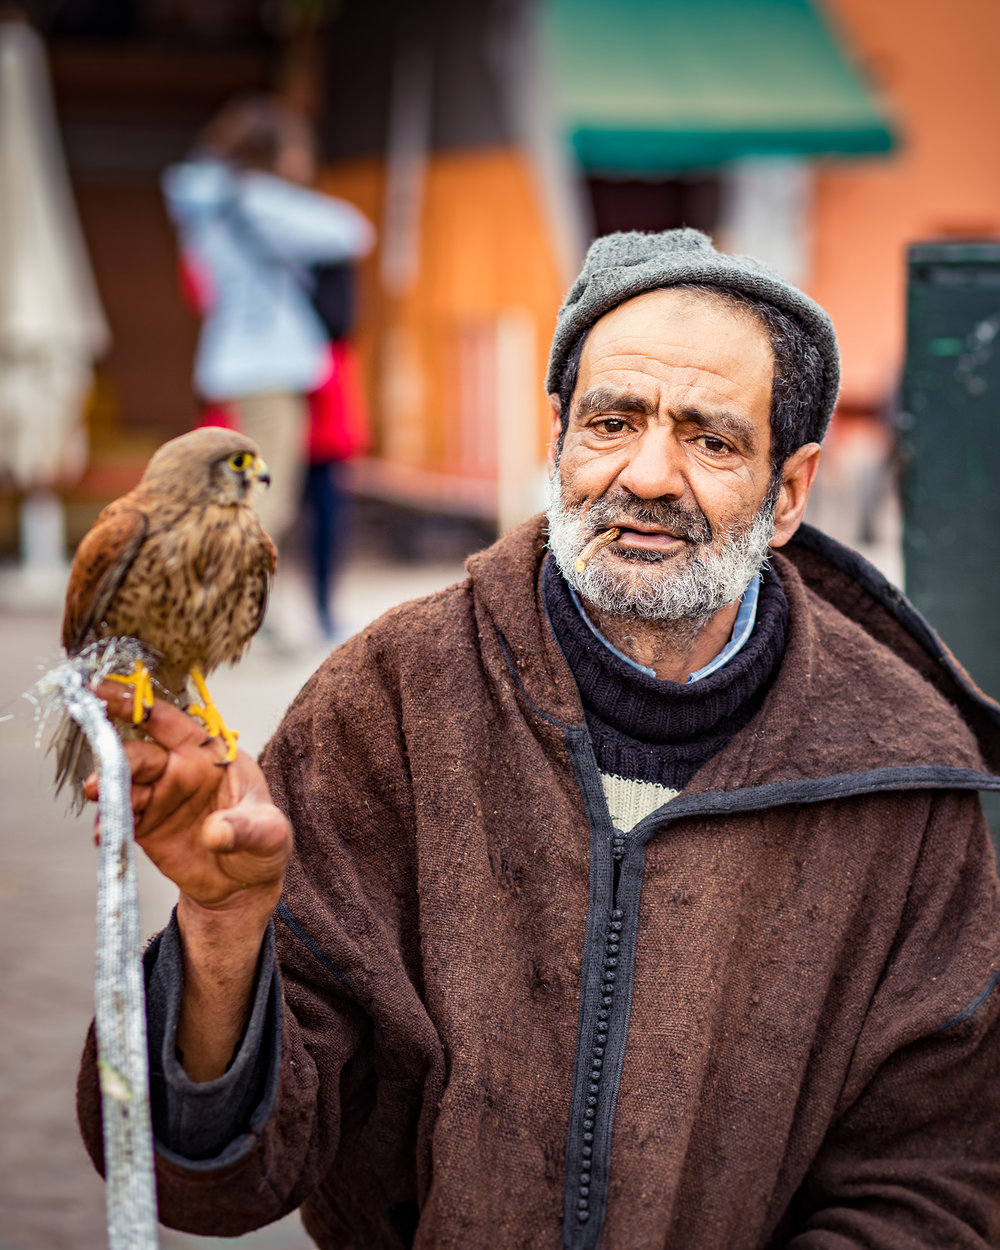 Local man posing for photos with his bird, for tips only of course.